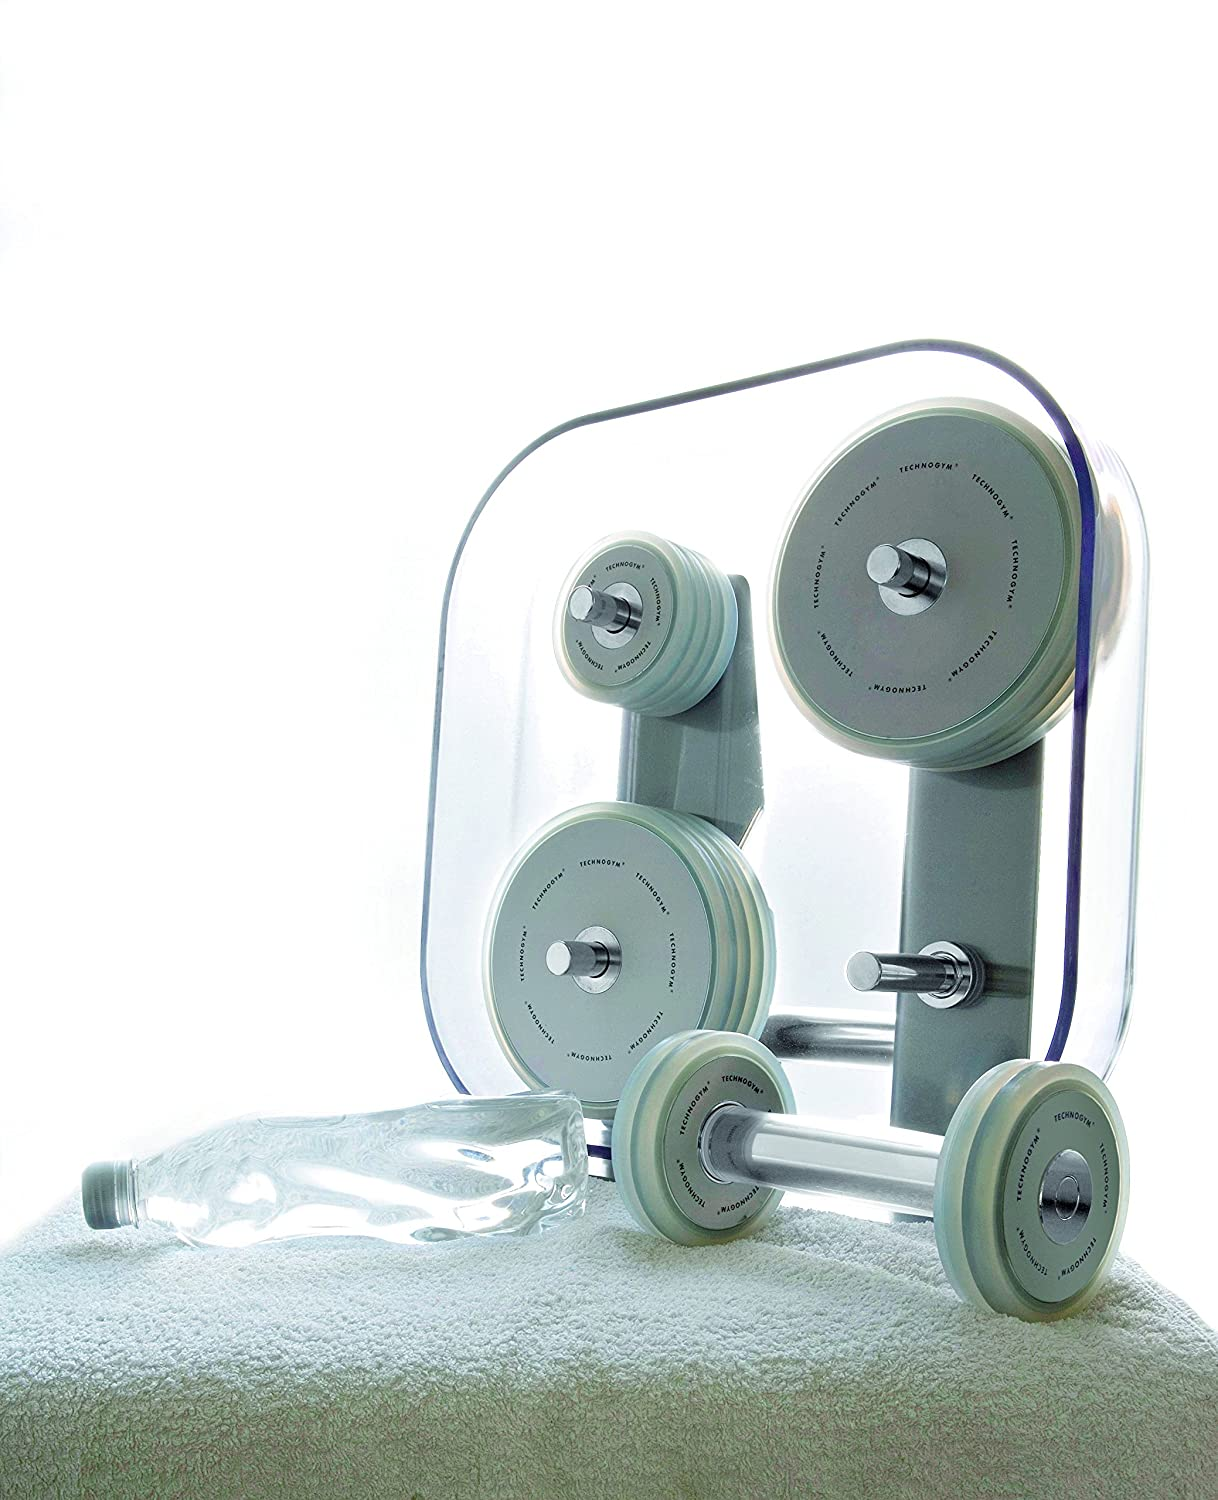 Technogym Wellness Rack - Kit de Mancuernas para Fitness, Color Plateado: Amazon.es: Deportes y aire libre